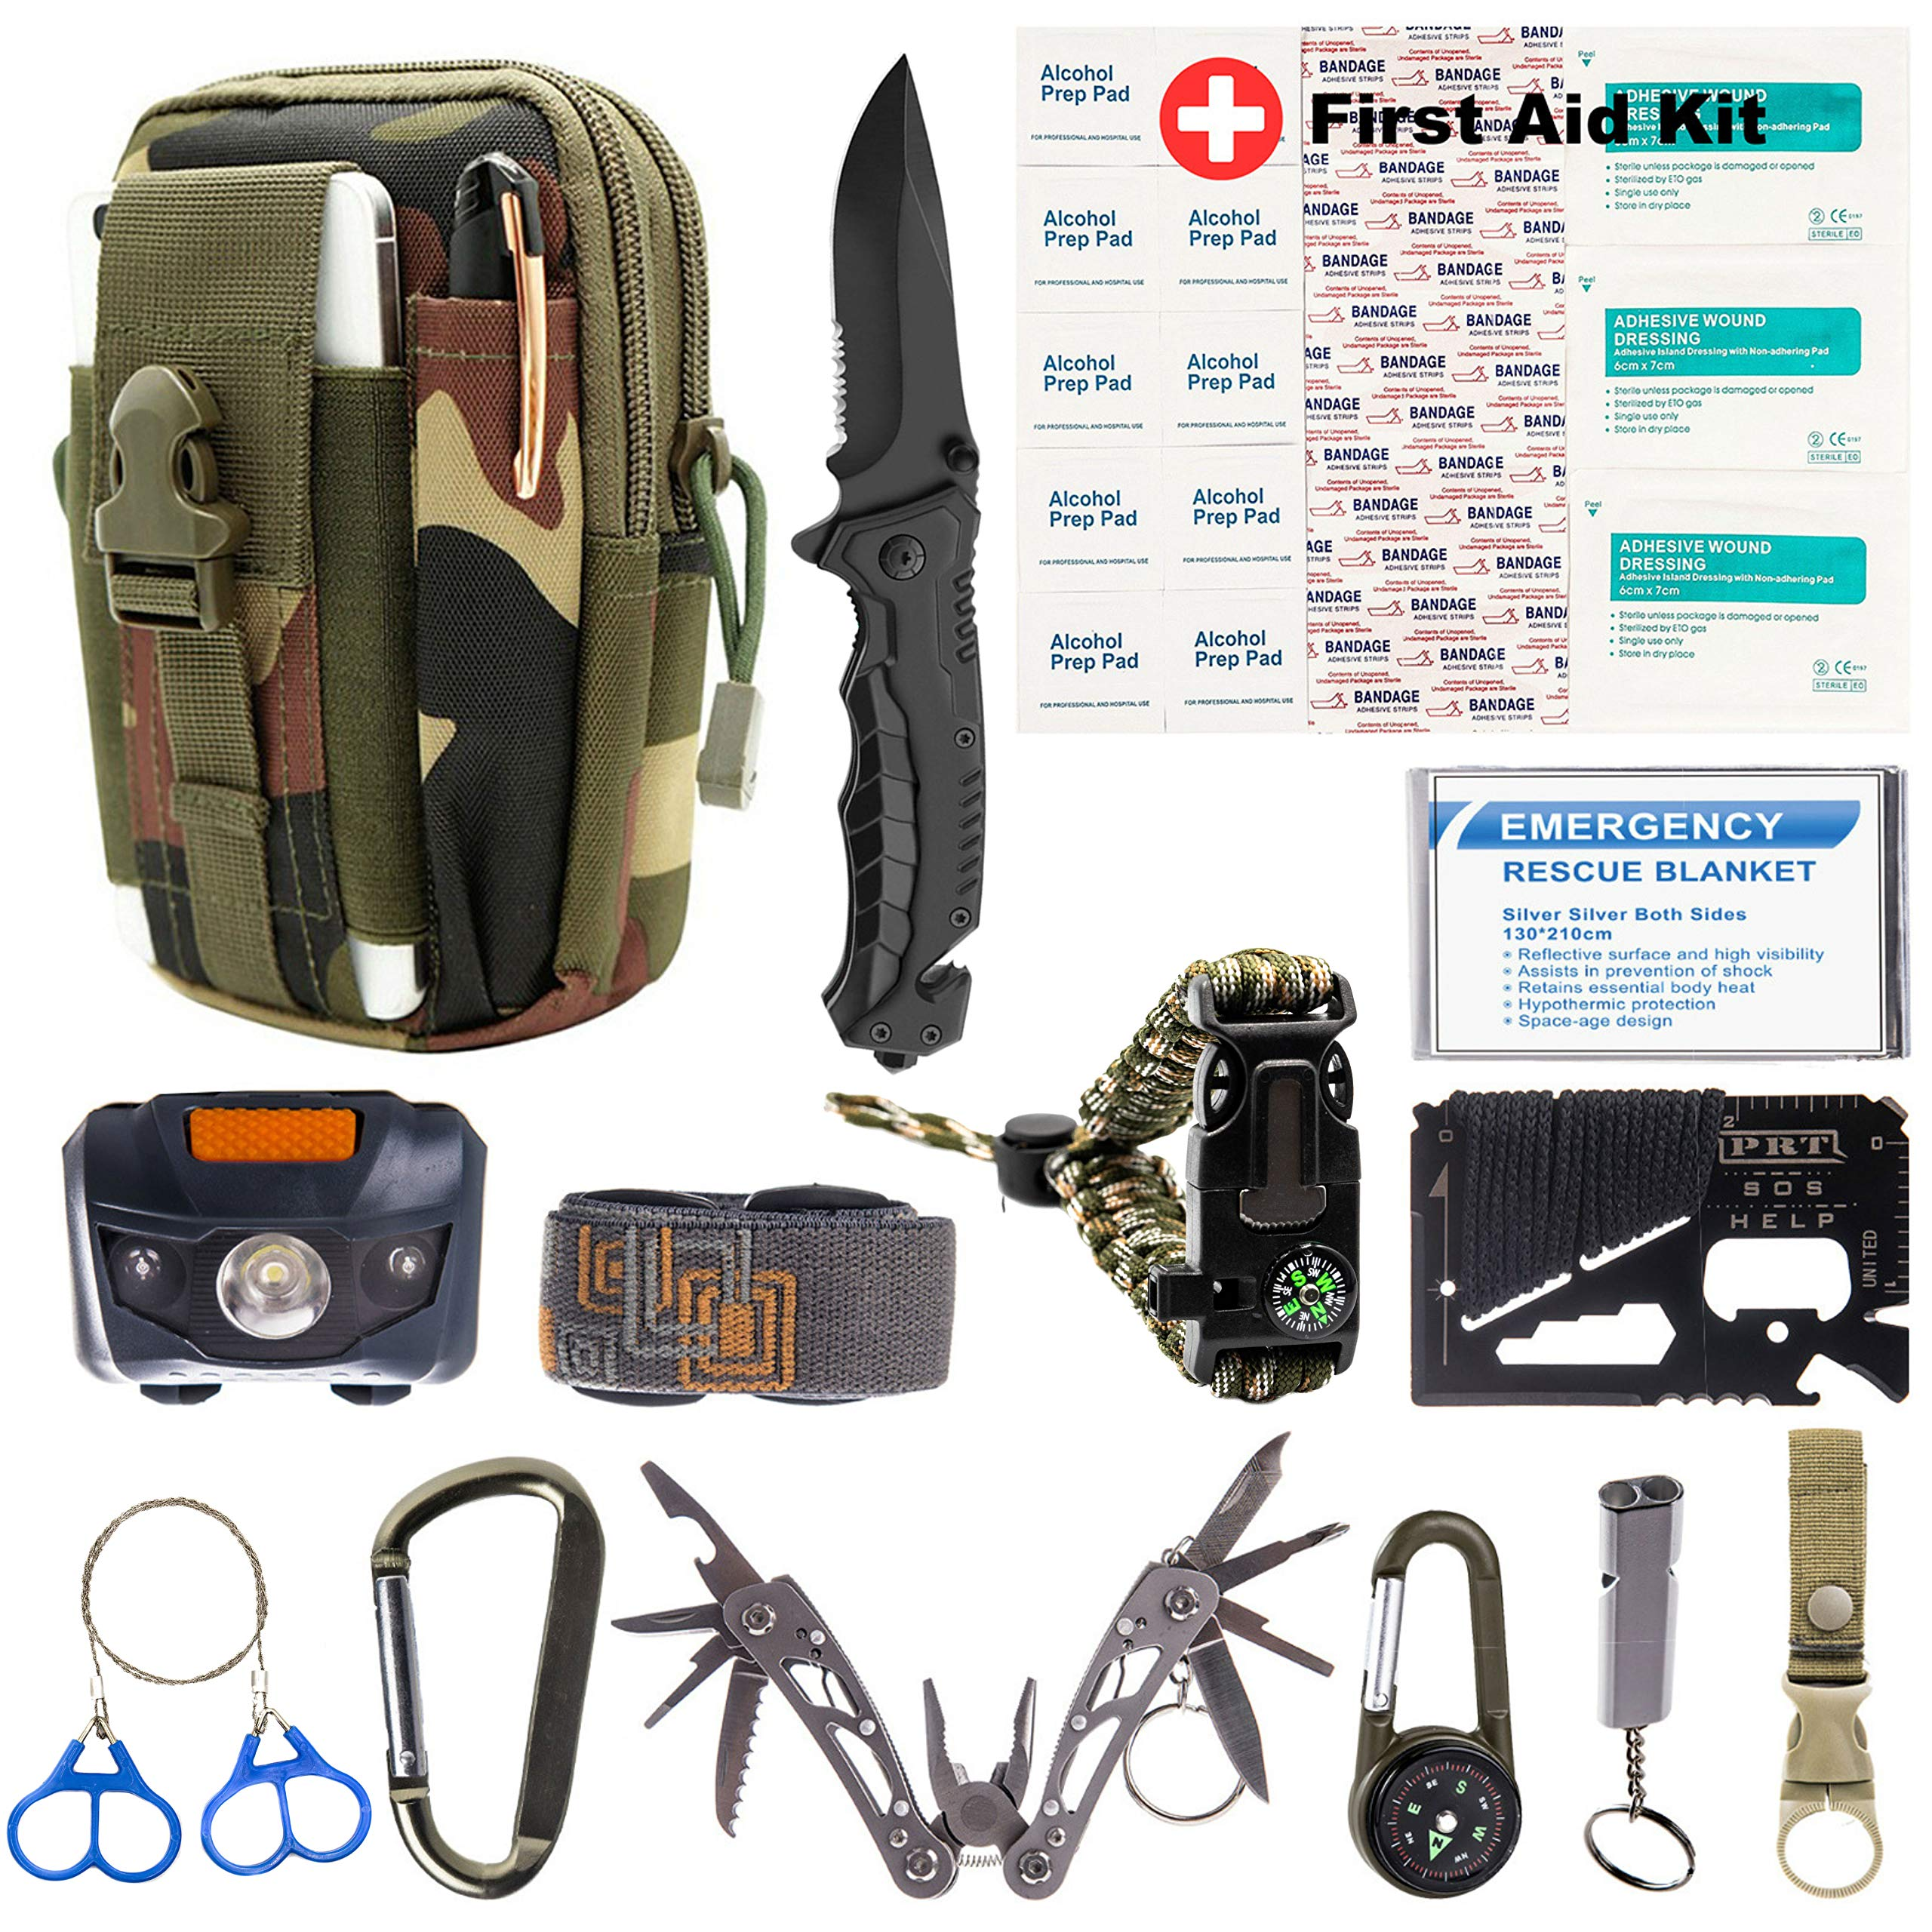 Mastersos Survival Emergency Kit - Survival Gear for Outdoor, Hiking and Camping - SOS Survival Kit with Emergency Blanket, Headlight, Military Knife, Compass, Wire Saw, Saber Card and More by Mastersos